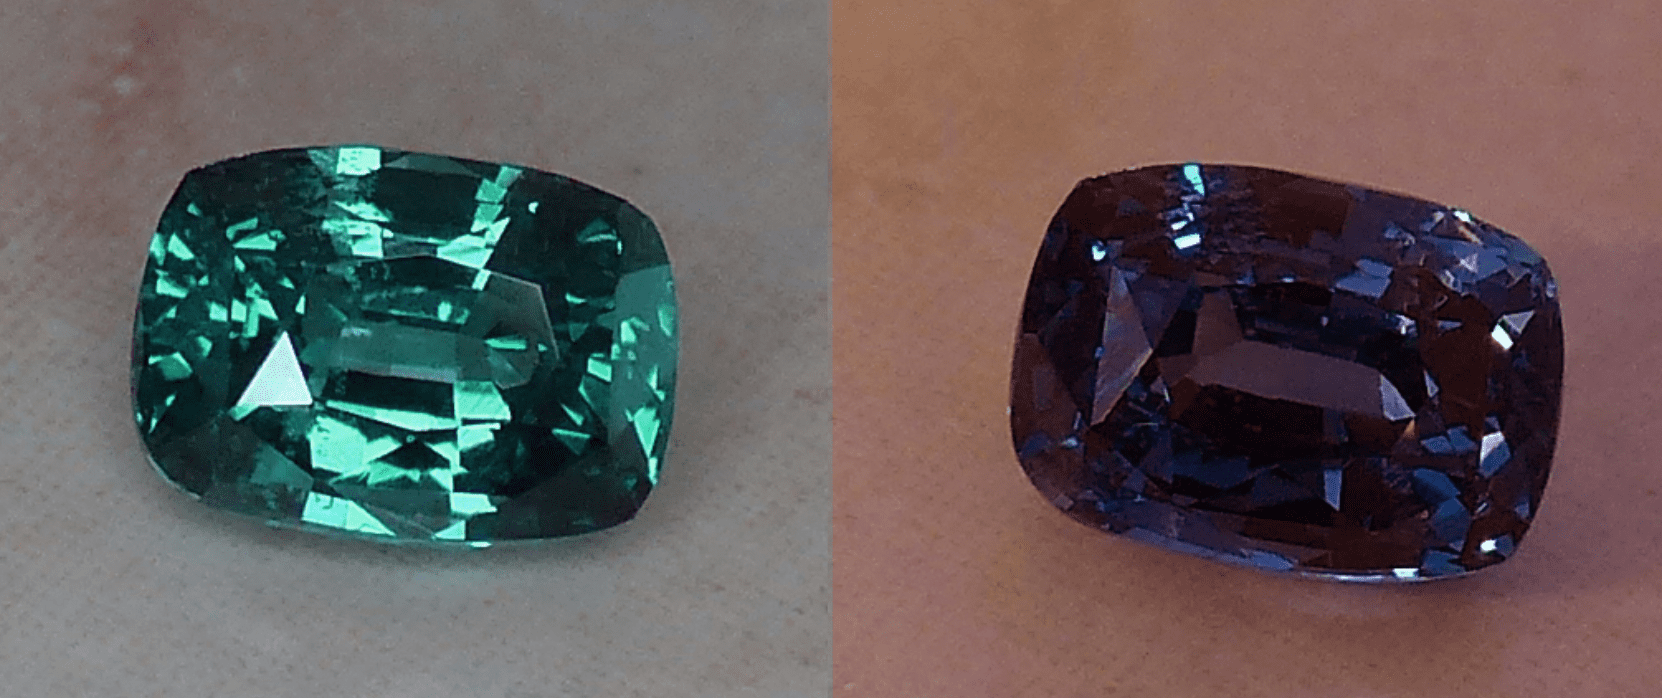 Alexandrite Value Price And Jewelry Information